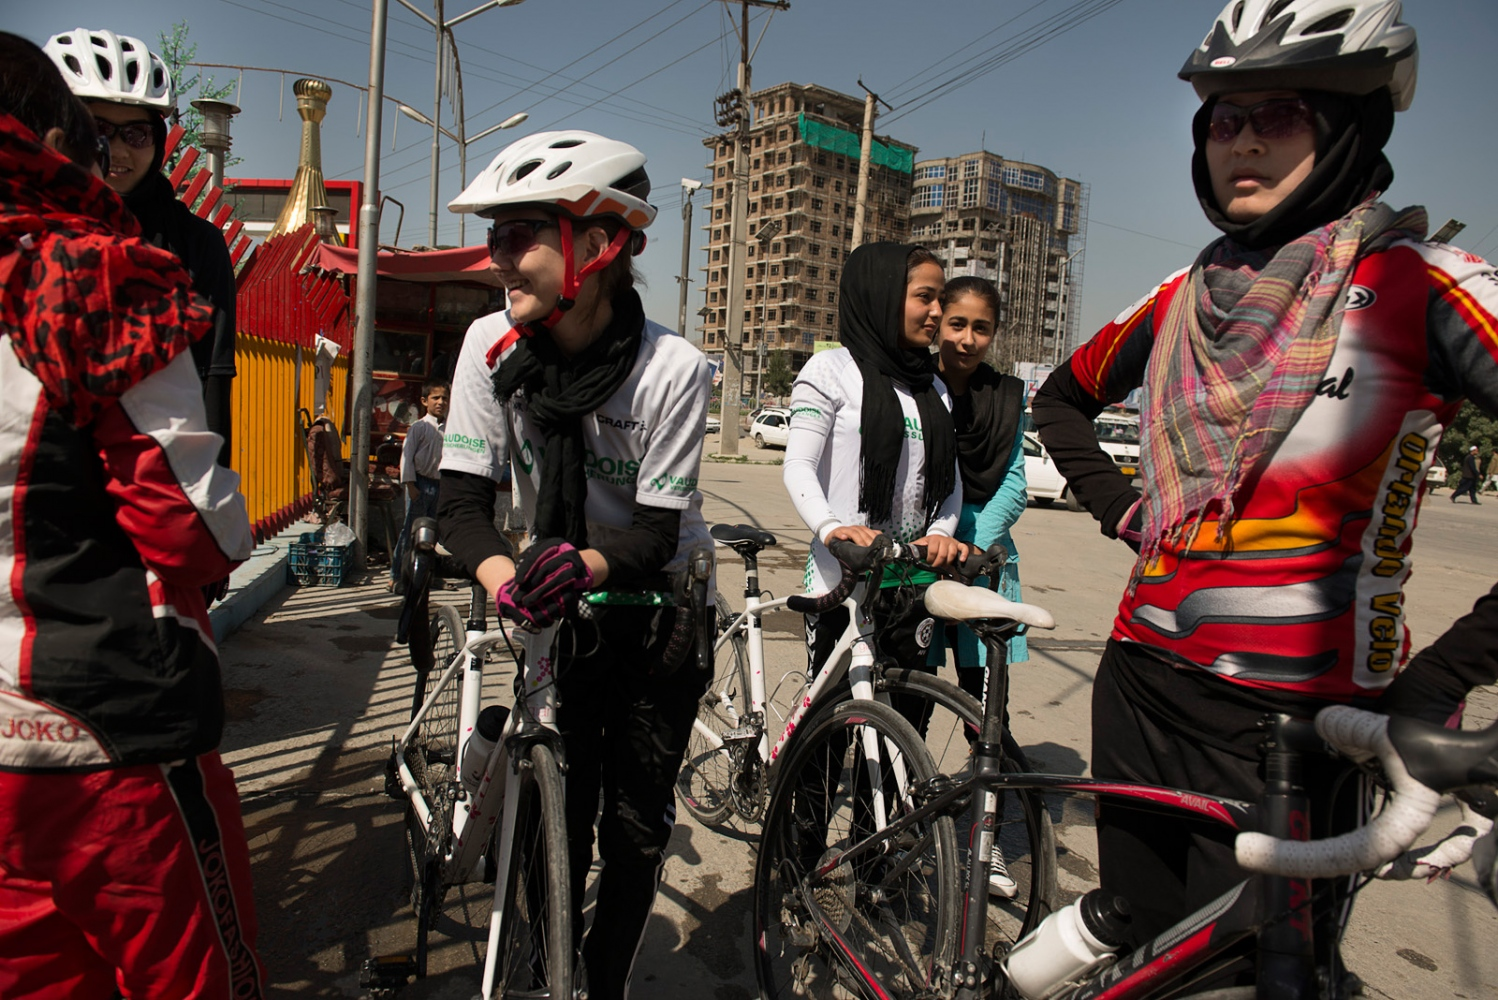 KABUL, AFGHANISTAN | 2015-05-22 | The first female national team of cycling of Afghanistan, made up of 14 to 23 year old brave girls, practice once several times a week just outside of Kabul, cautious for their safety.